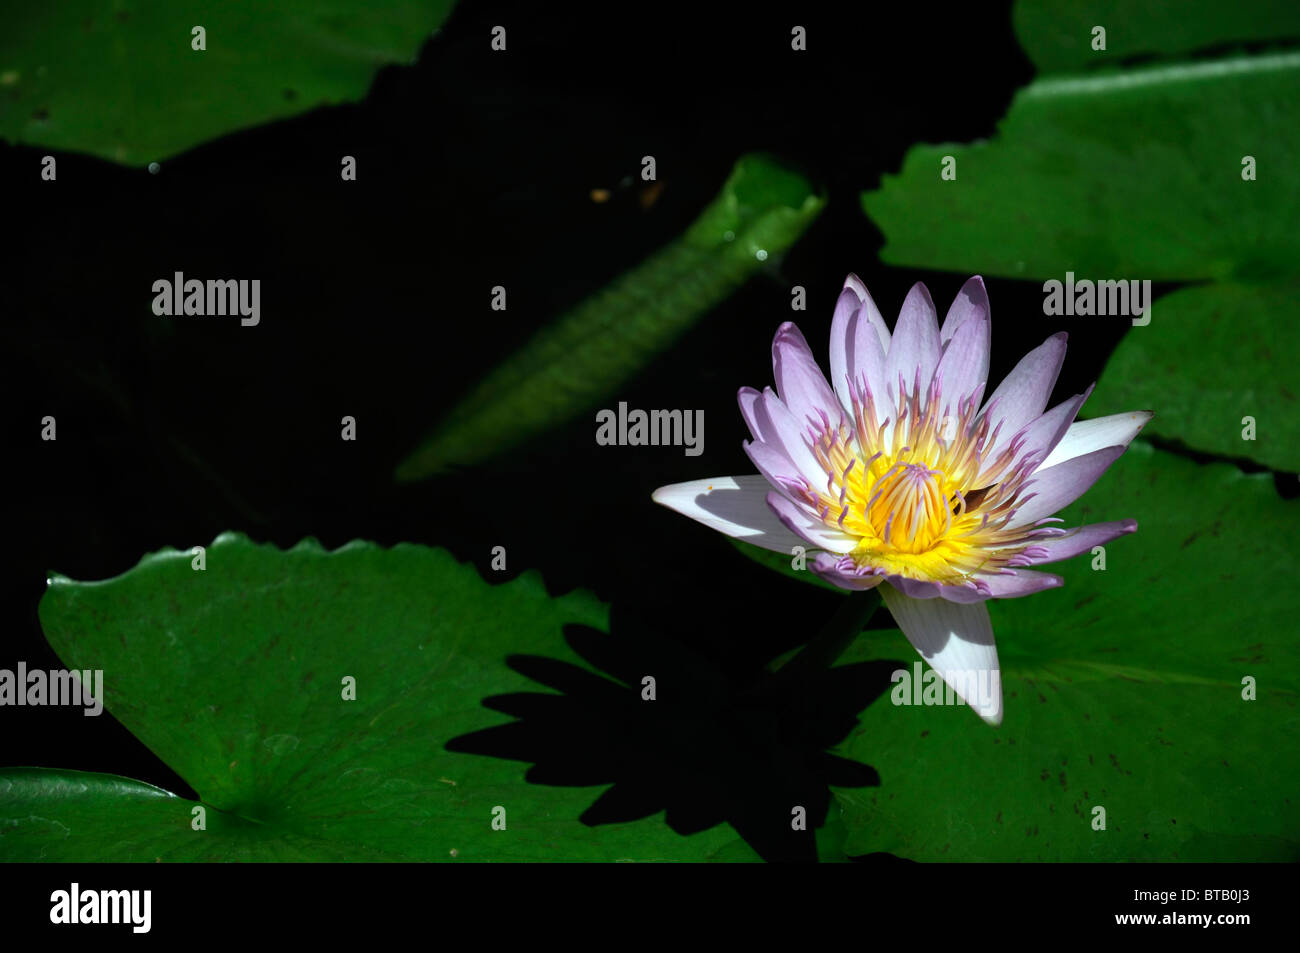 Water Lily Flower Stock Photos Water Lily Flower Stock Images Alamy